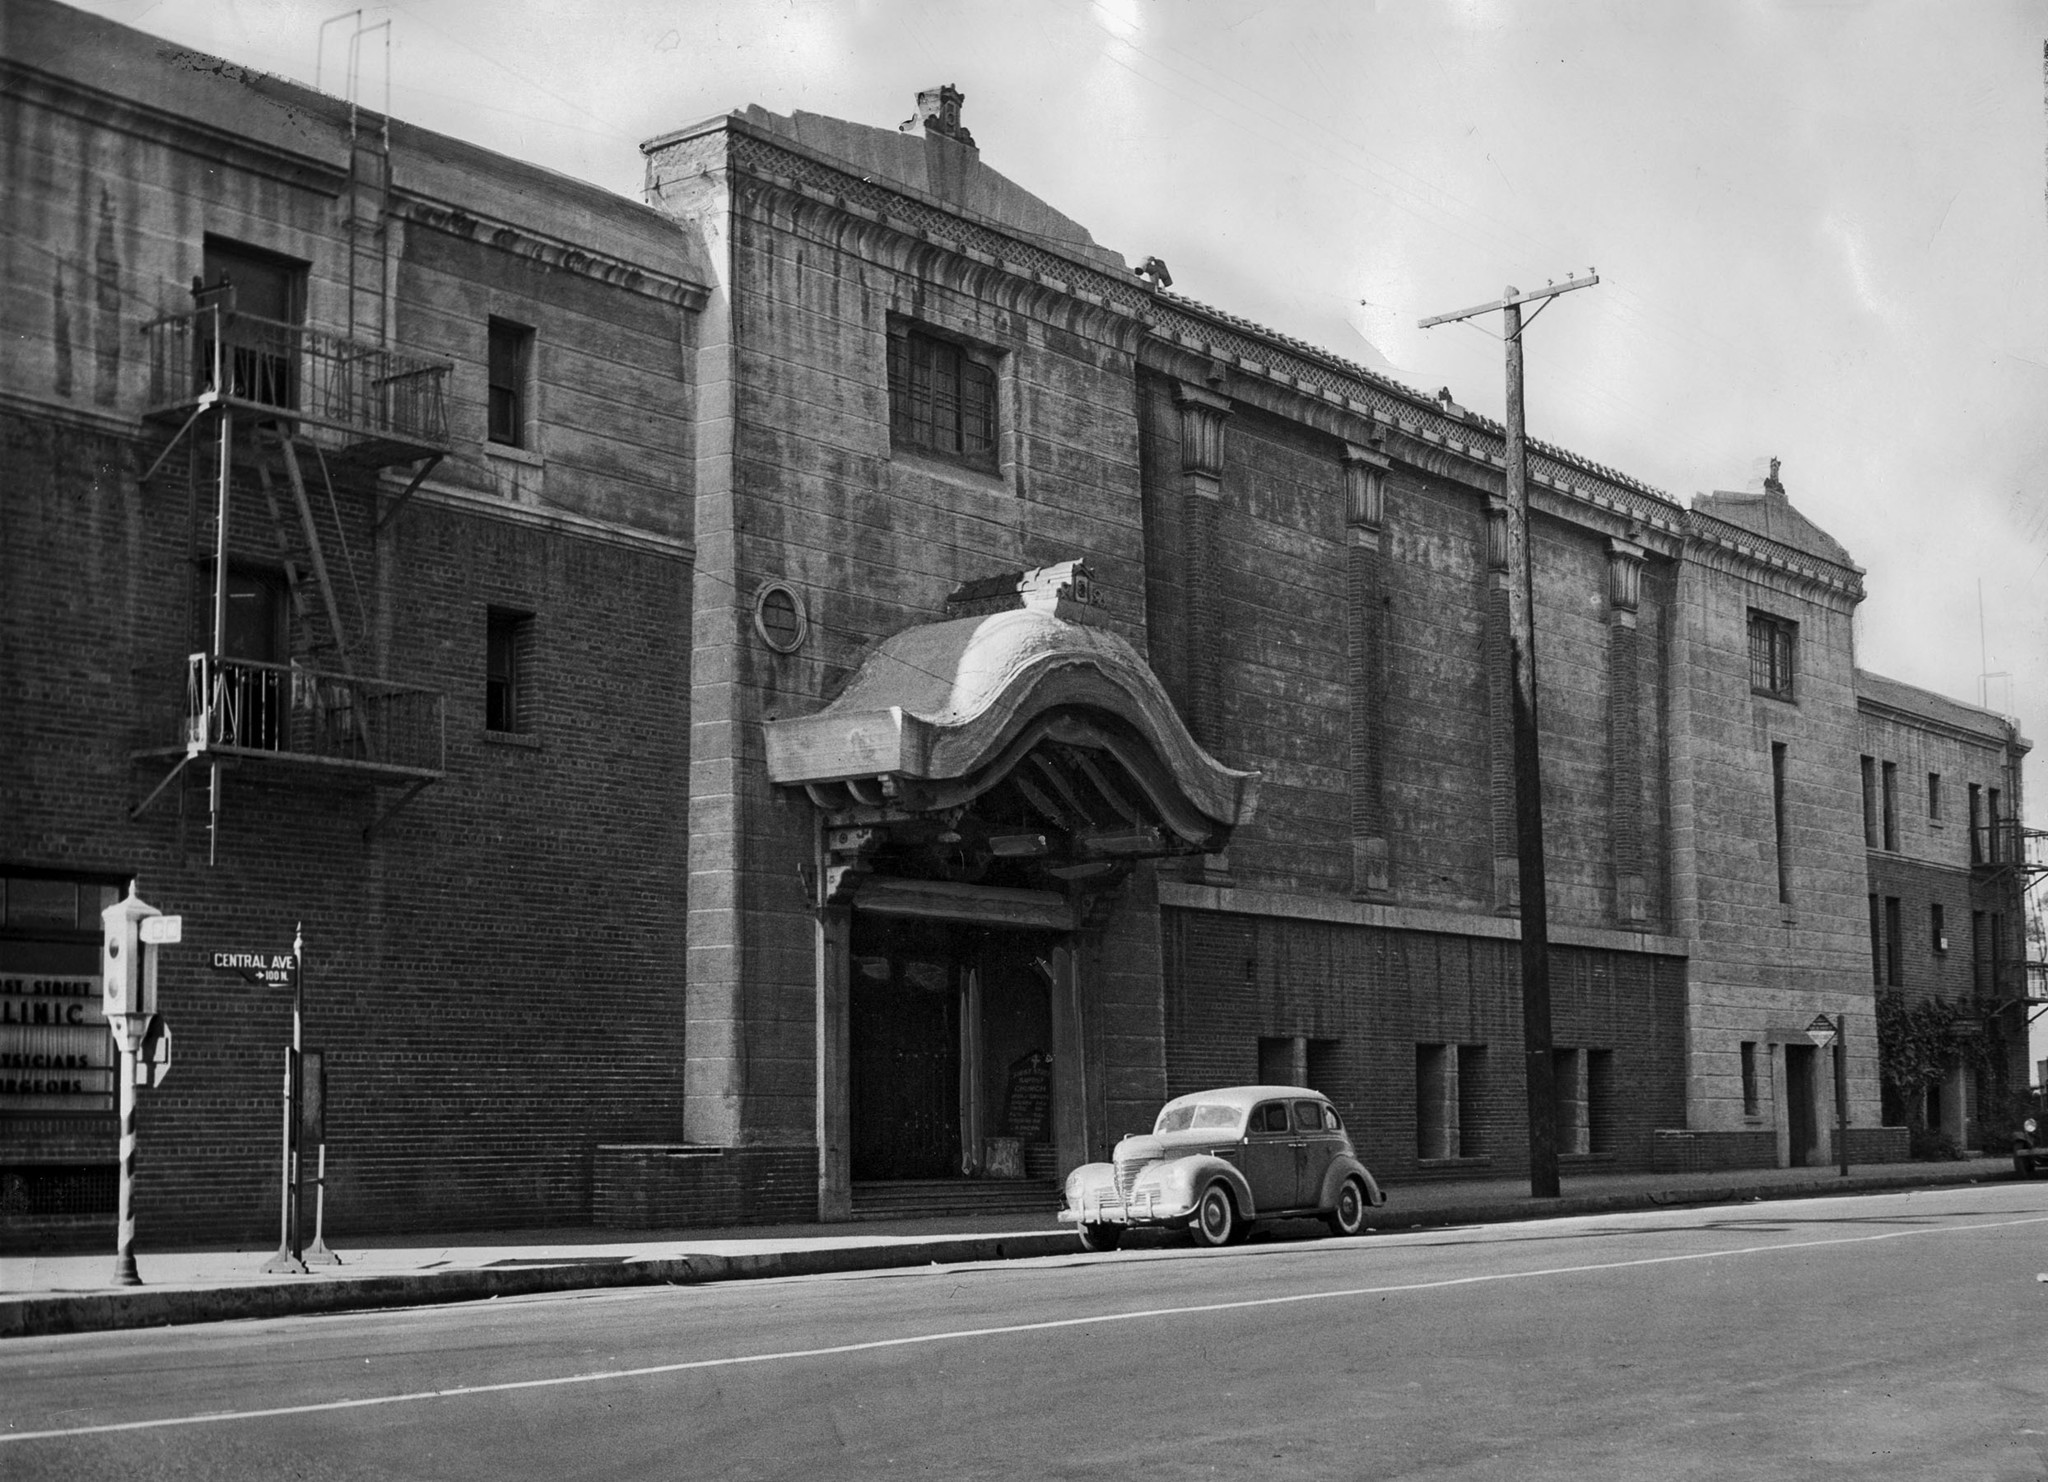 Dec. 30, 1944: Photo of the Hompa Hongwanja Buddhist Temple in Little Tokyo. During the World War II